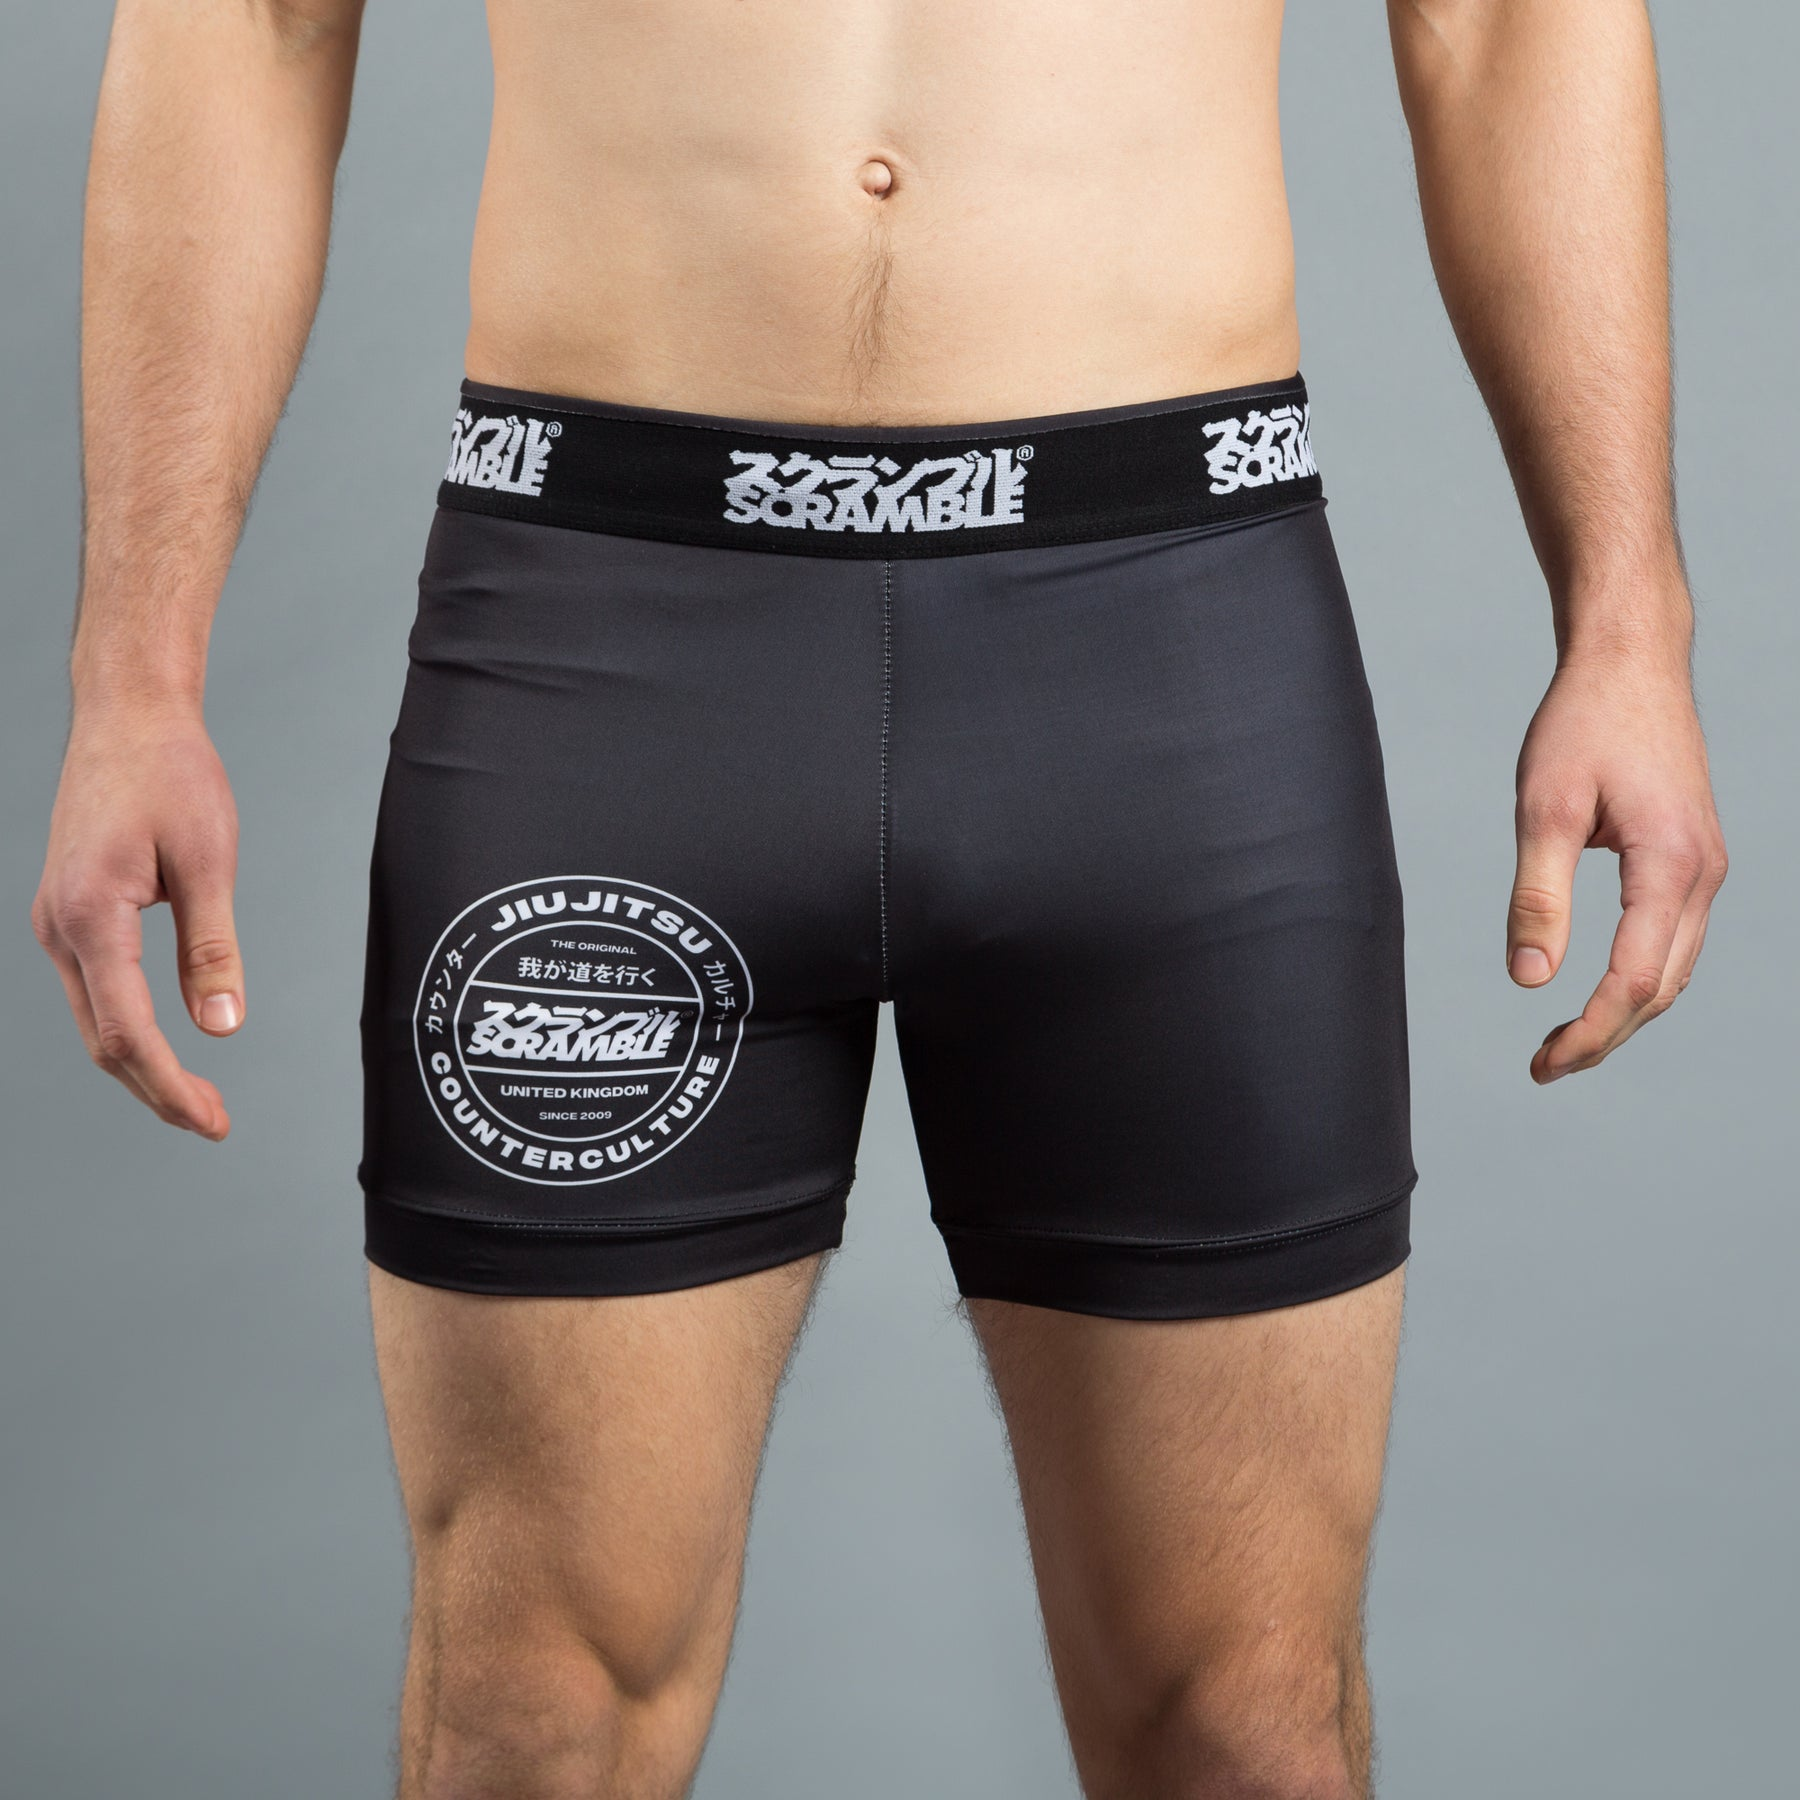 2019 discount sale new arrive affordable price Scramble Roundel Vale Tudo Shorts